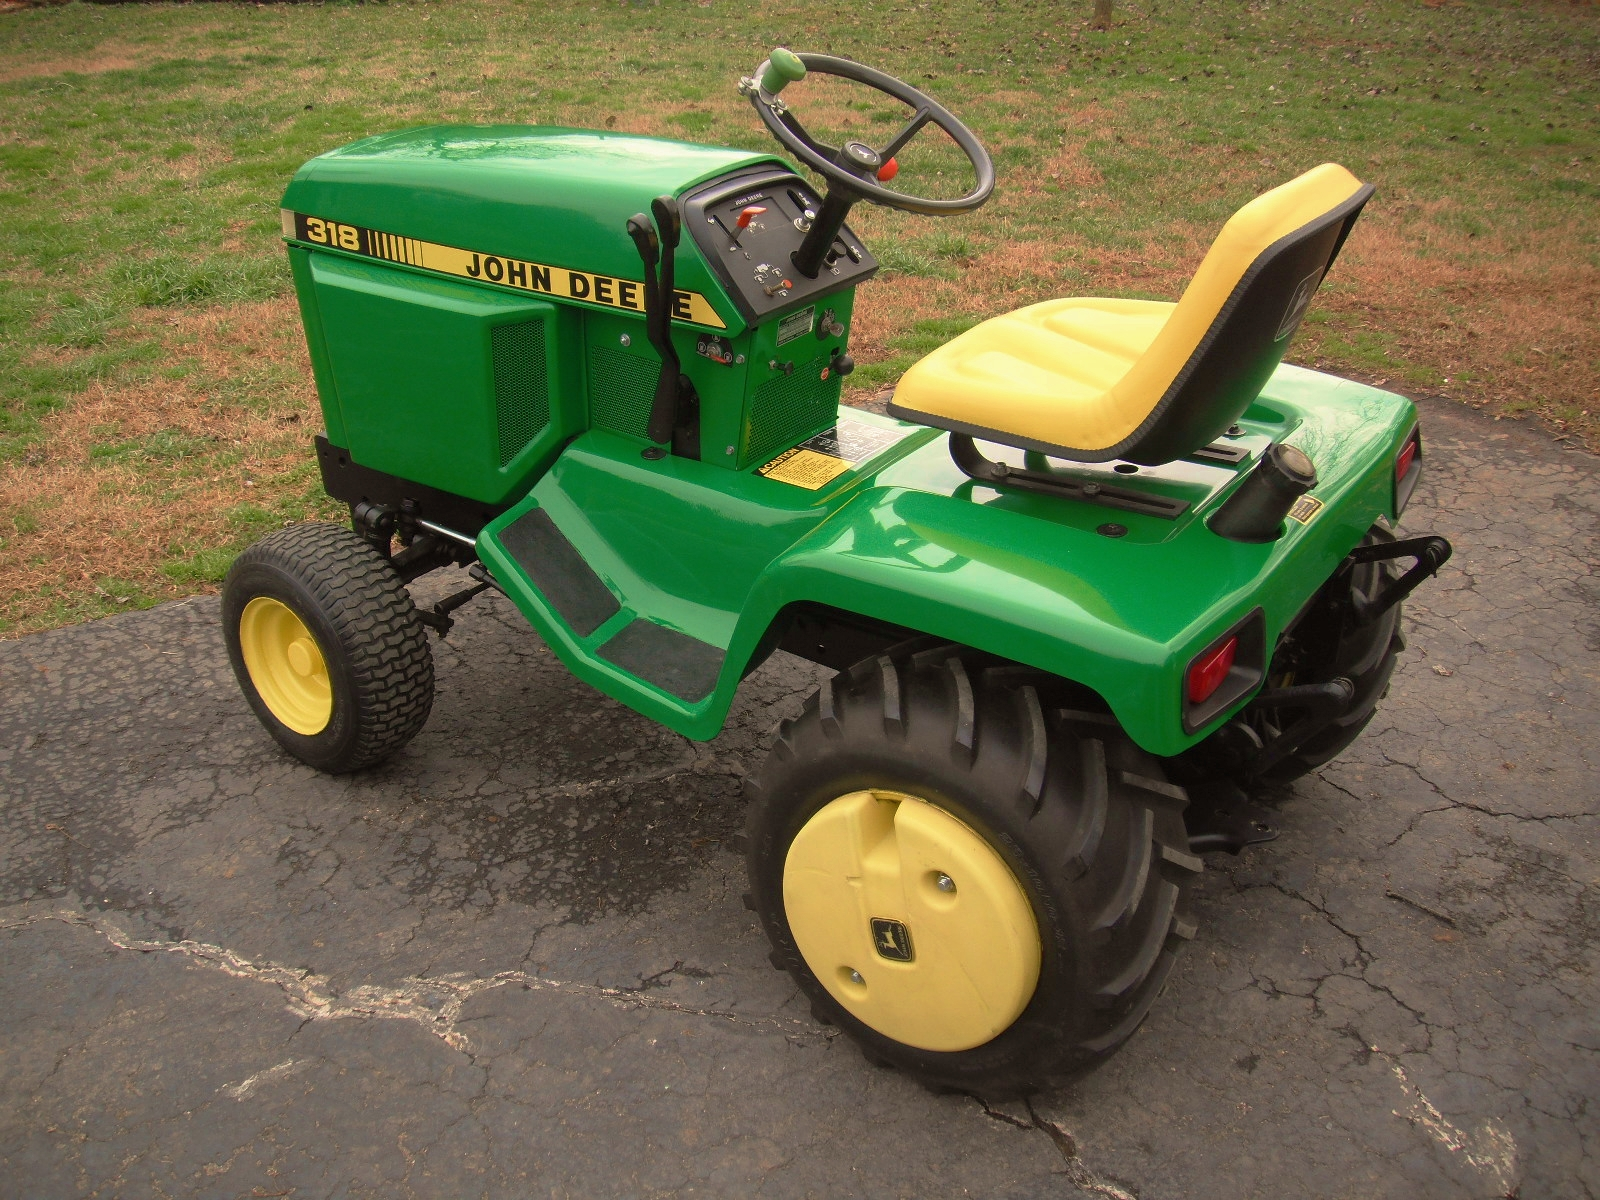 ATTN: All John Deere 318 Owner's if you want it to last ...